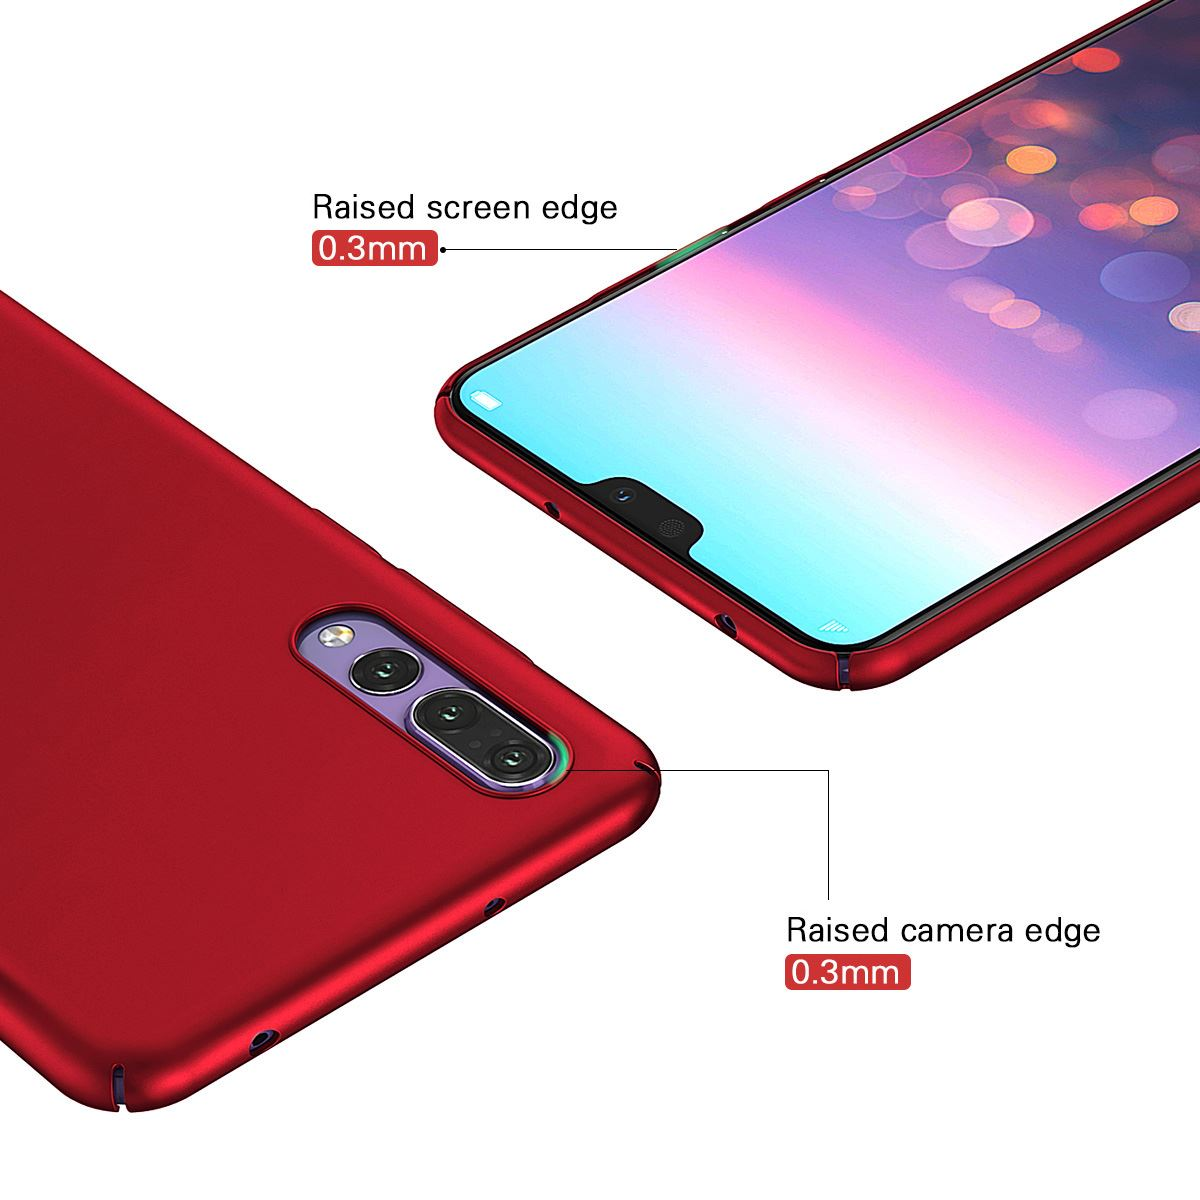 Luxury-Protective-Slim-Thin-Hard-Back-Case-Cover-For-Huawei-P20-Pro-P10-P-Smart thumbnail 24